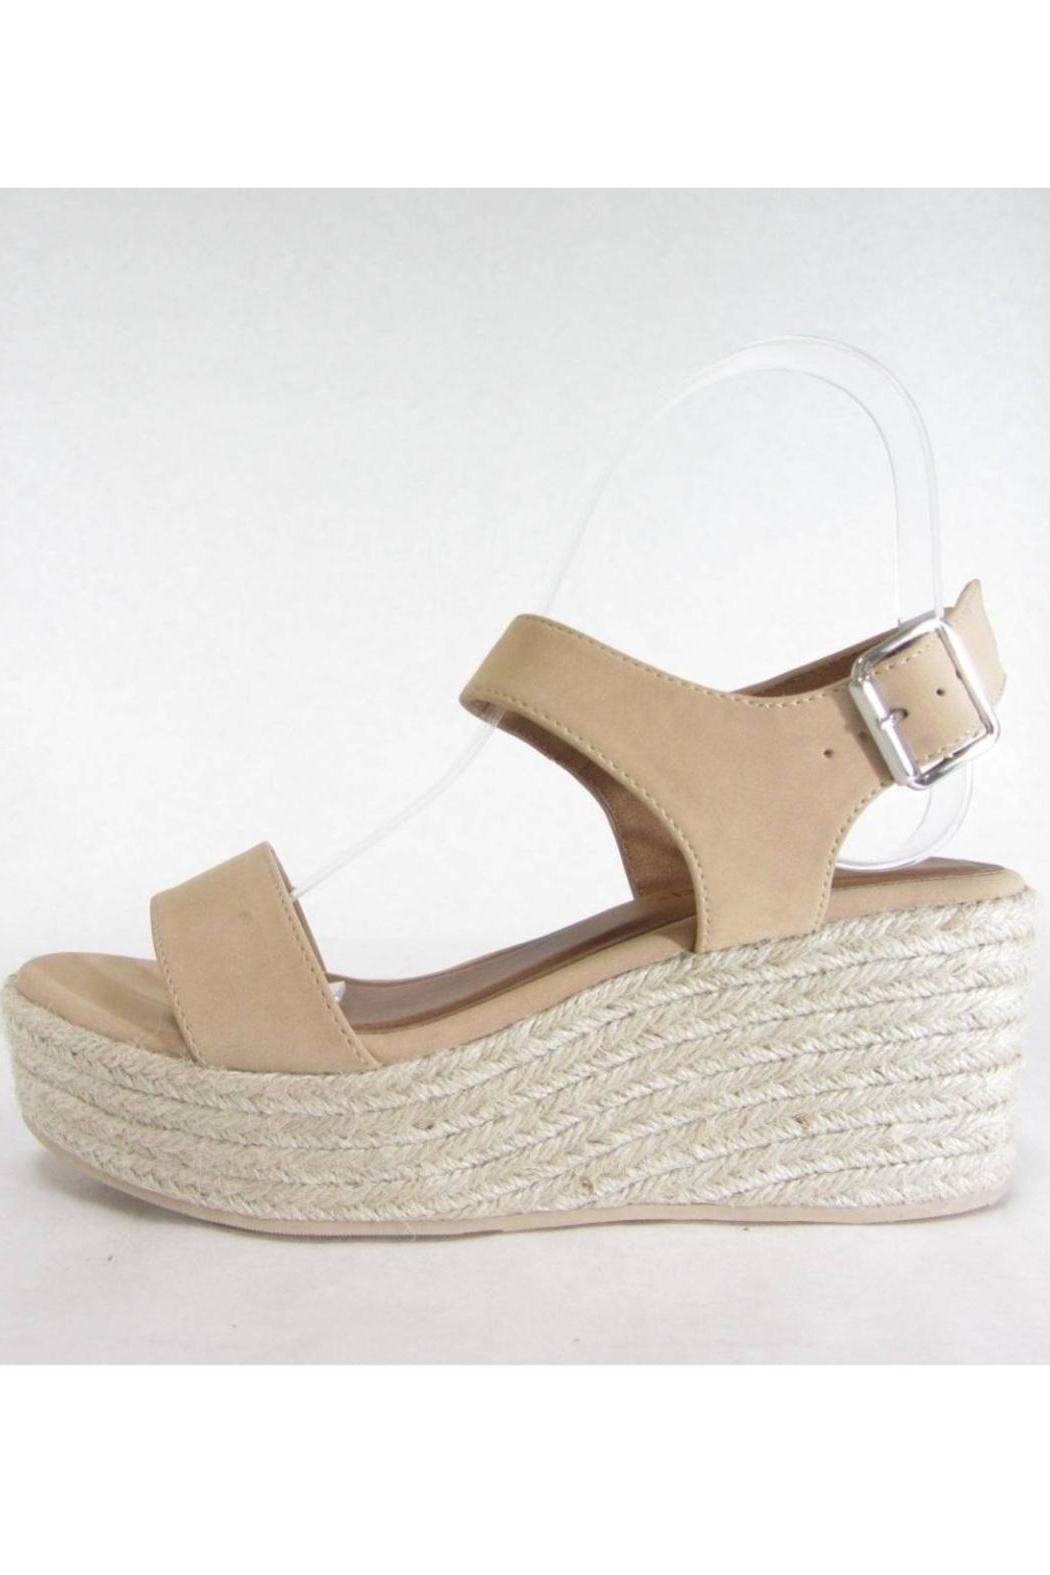 City Classified Luthor Nude Espadrille - Main Image